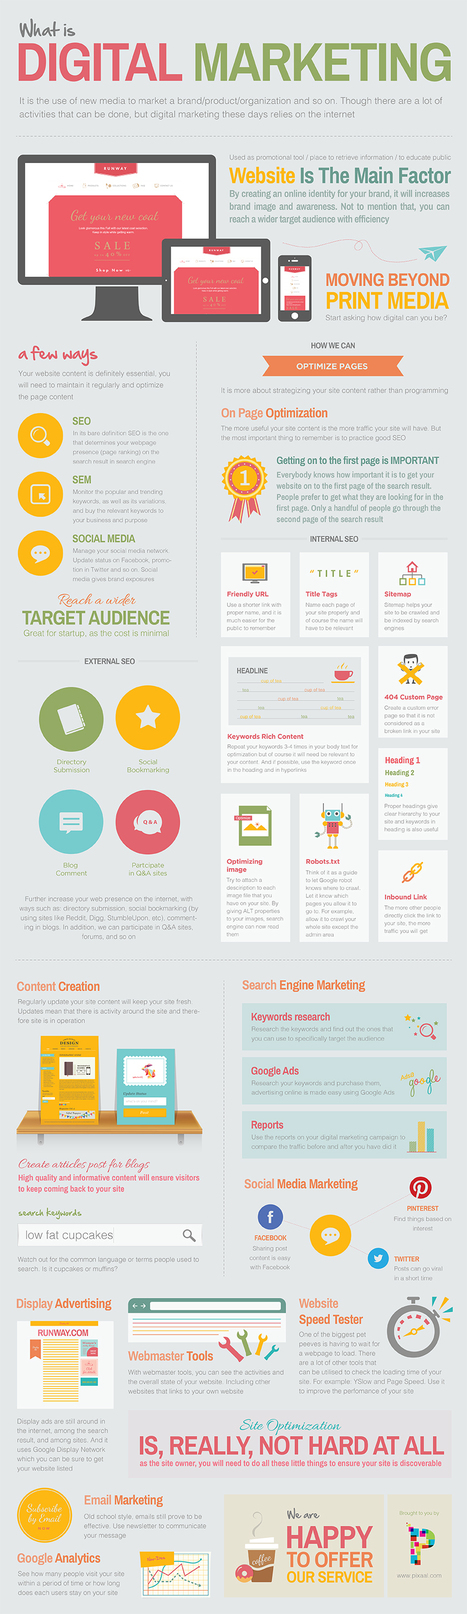 The Ultimate Guide To Understanding Digital Marketing [Infographic] | Digital Marketing & Social Technologies | Scoop.it